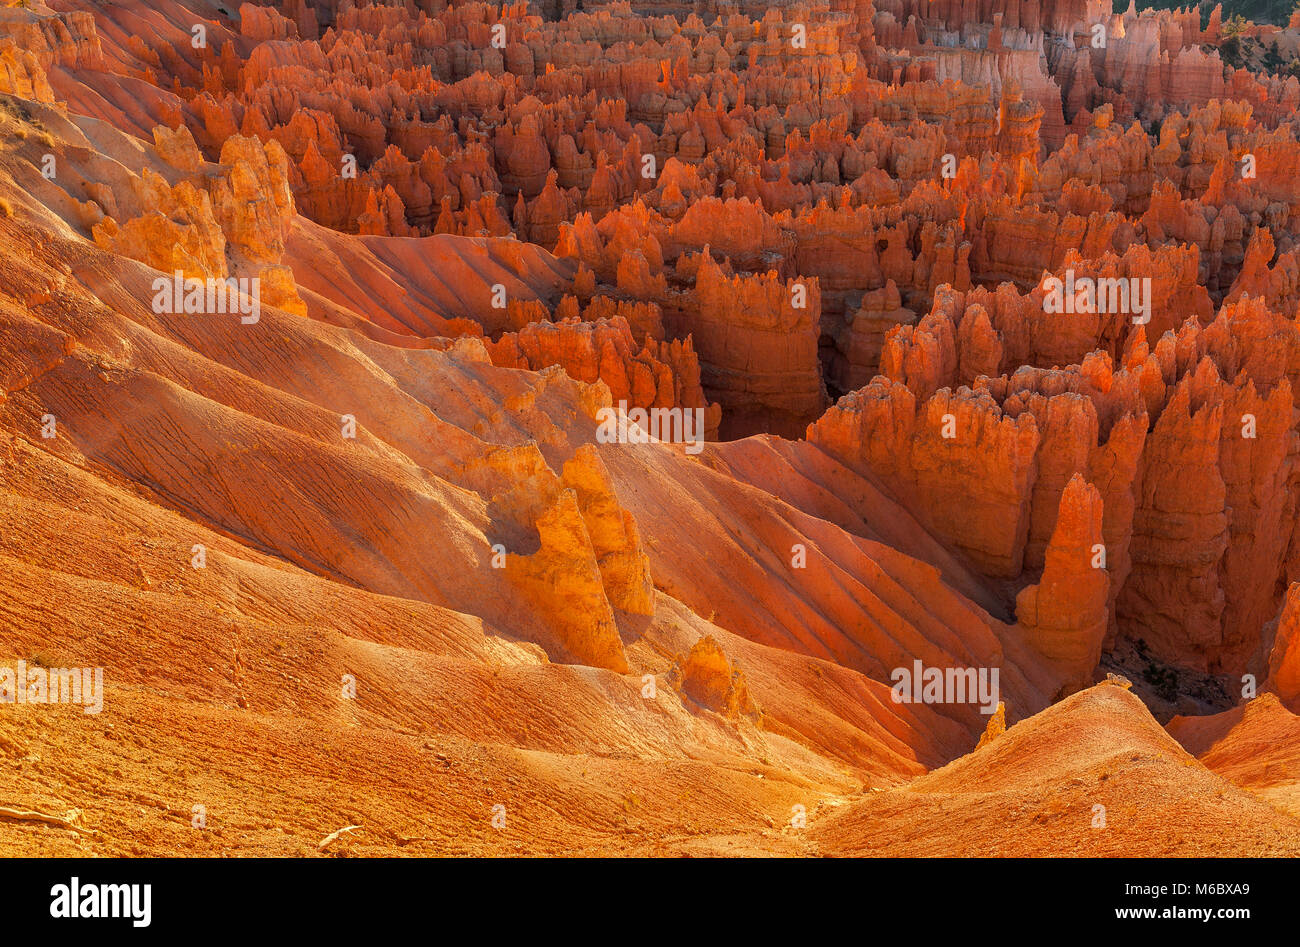 Cheminées, Wall Street, le Parc National de Bryce Canyon, Utah Photo Stock